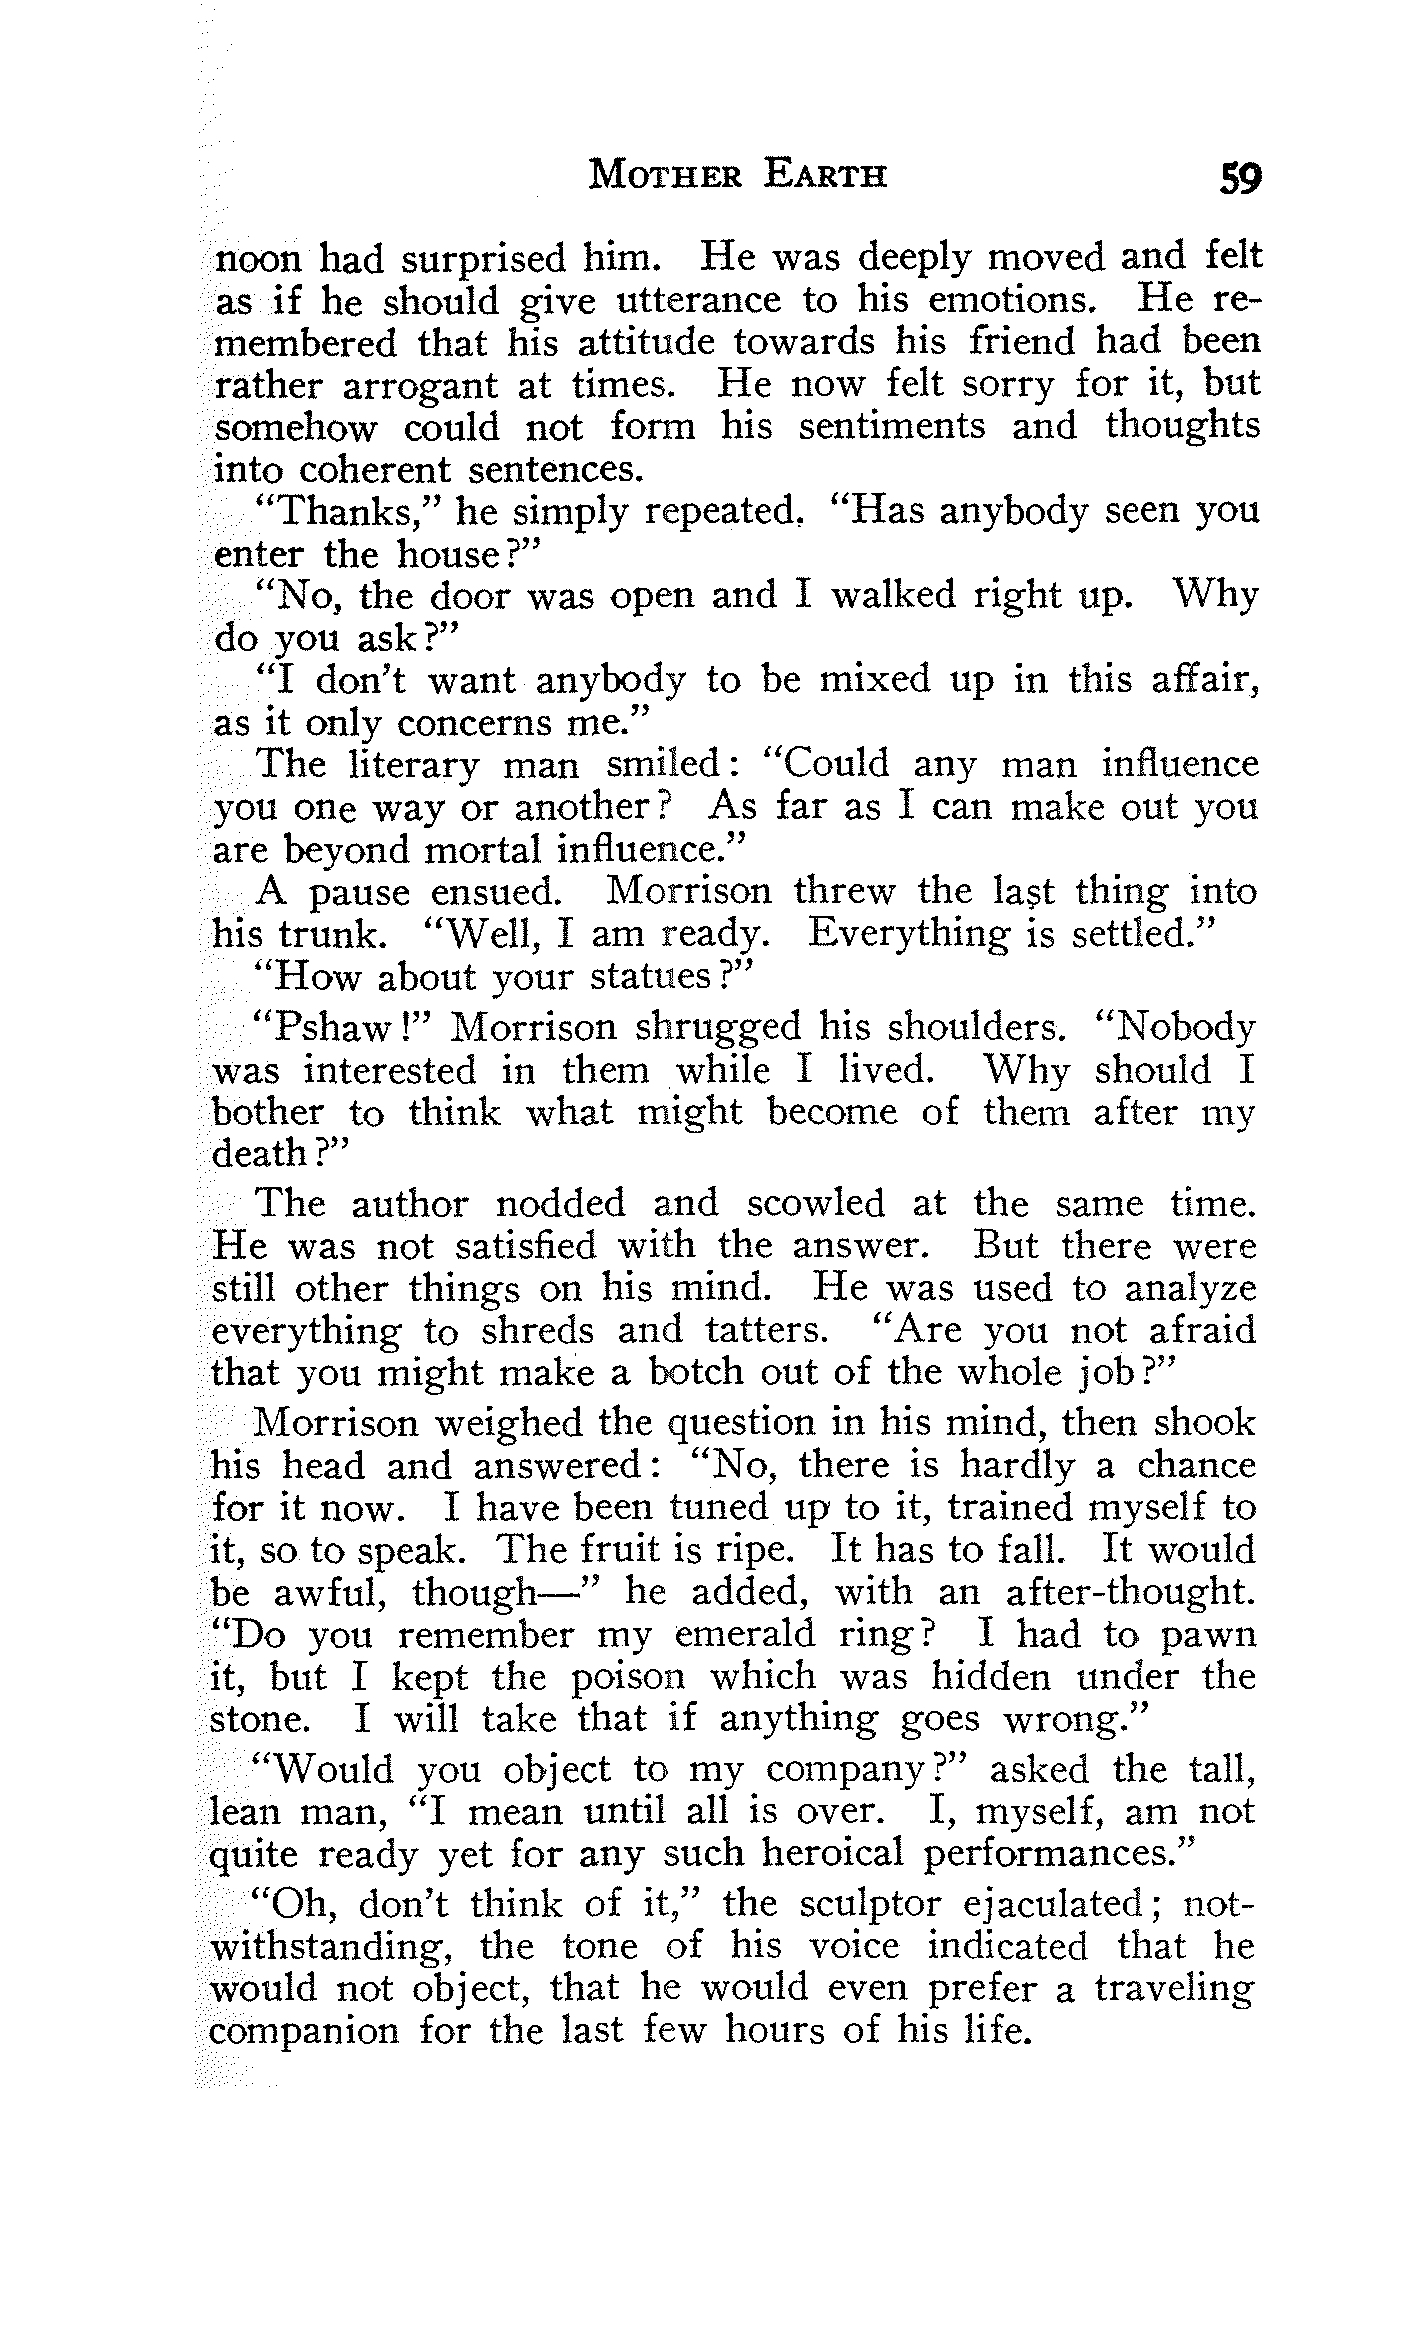 The Project Gutenberg Ebook Of Mother Earth, Vol 1 No 4, Edited By Emma  Goldman